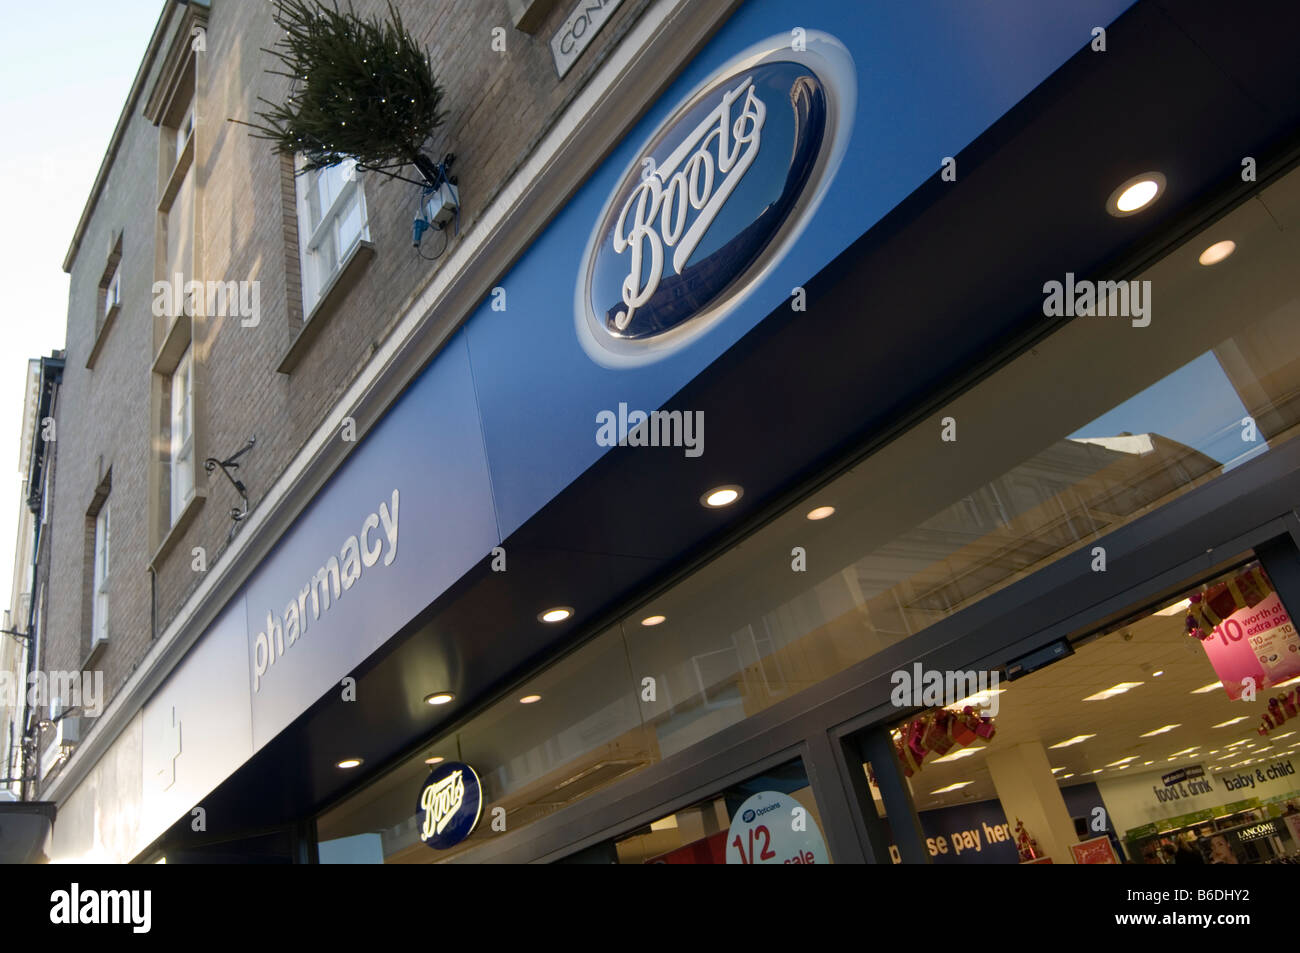 boots the chemist retail retailer shop shops chain brand branch york uk high street highstreet pharmacy dispensing - Stock Image